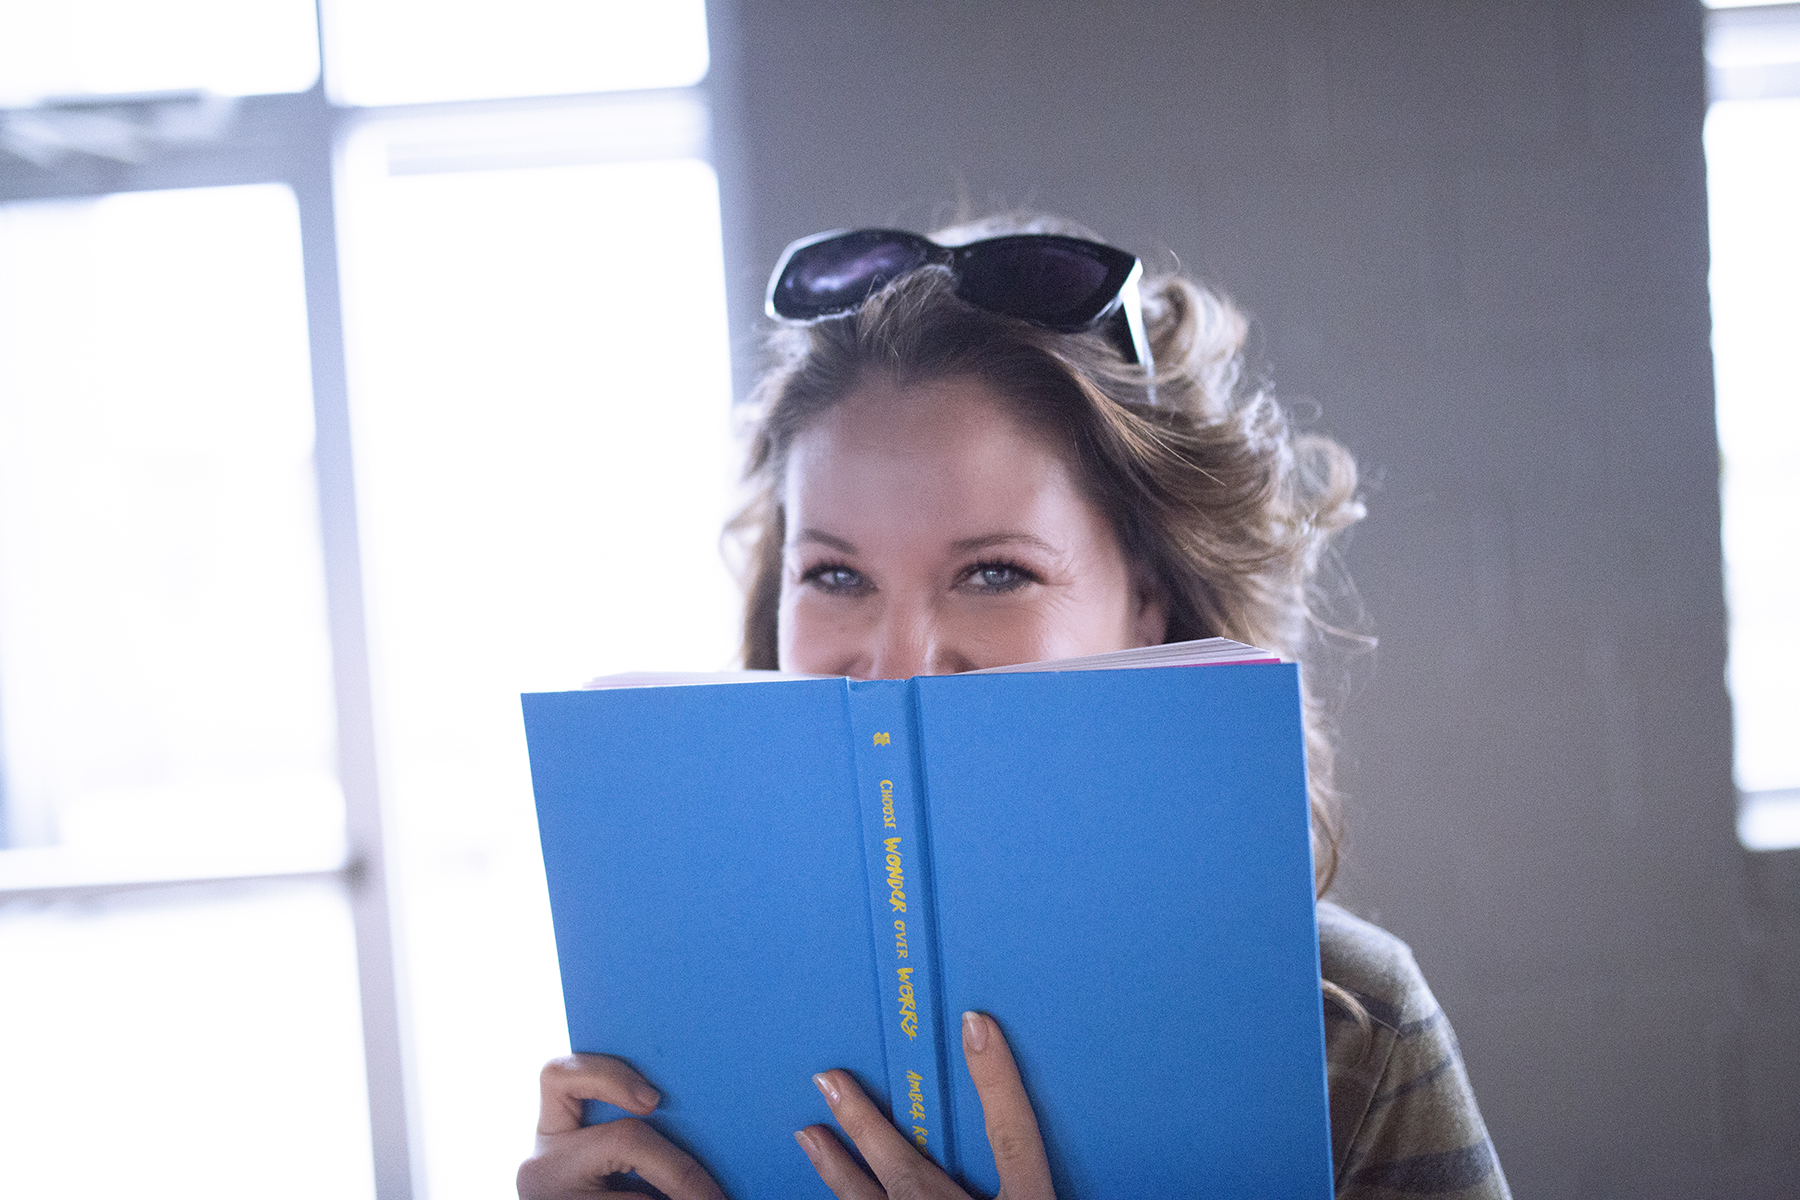 smiling behind blue book